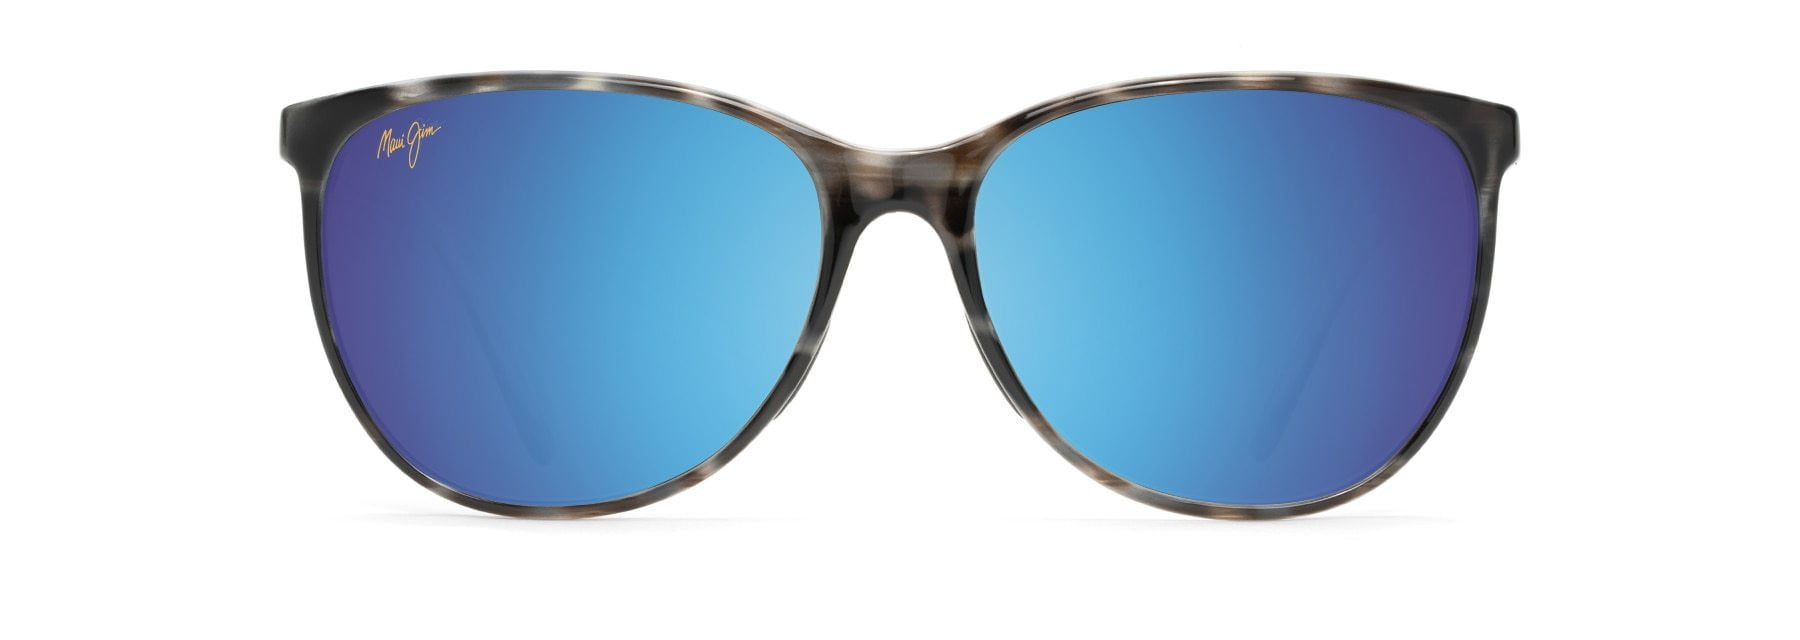 MyMaui Ocean MM723-020 Sunglasses